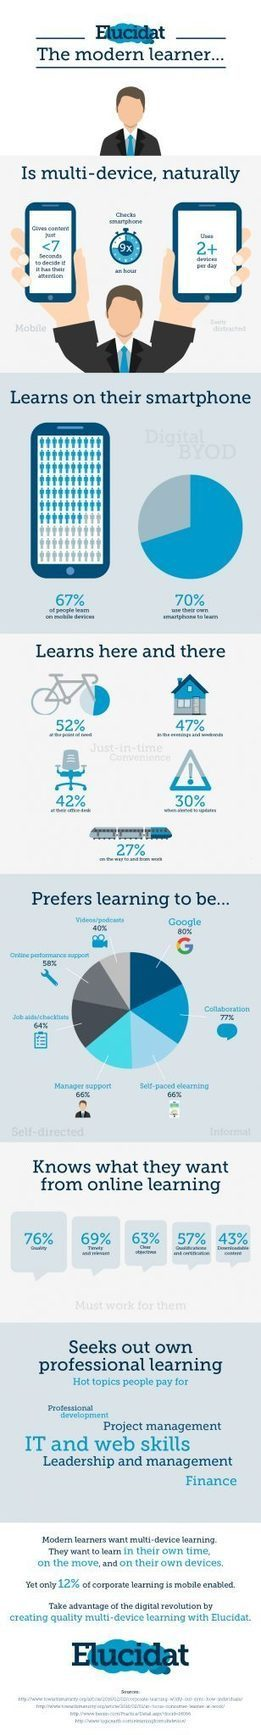 Profile of the Modern Learner Infographic   The inquiring libraria   Scoop.it